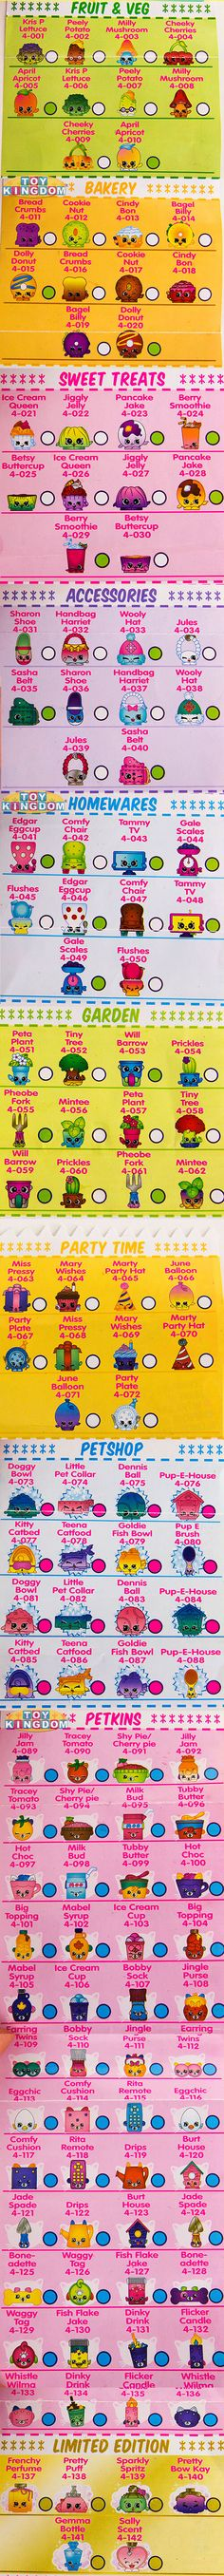 photo about Printable Shopkins List referred to as 36 Excellent Shopkins listing photos within 2019 Shopkins